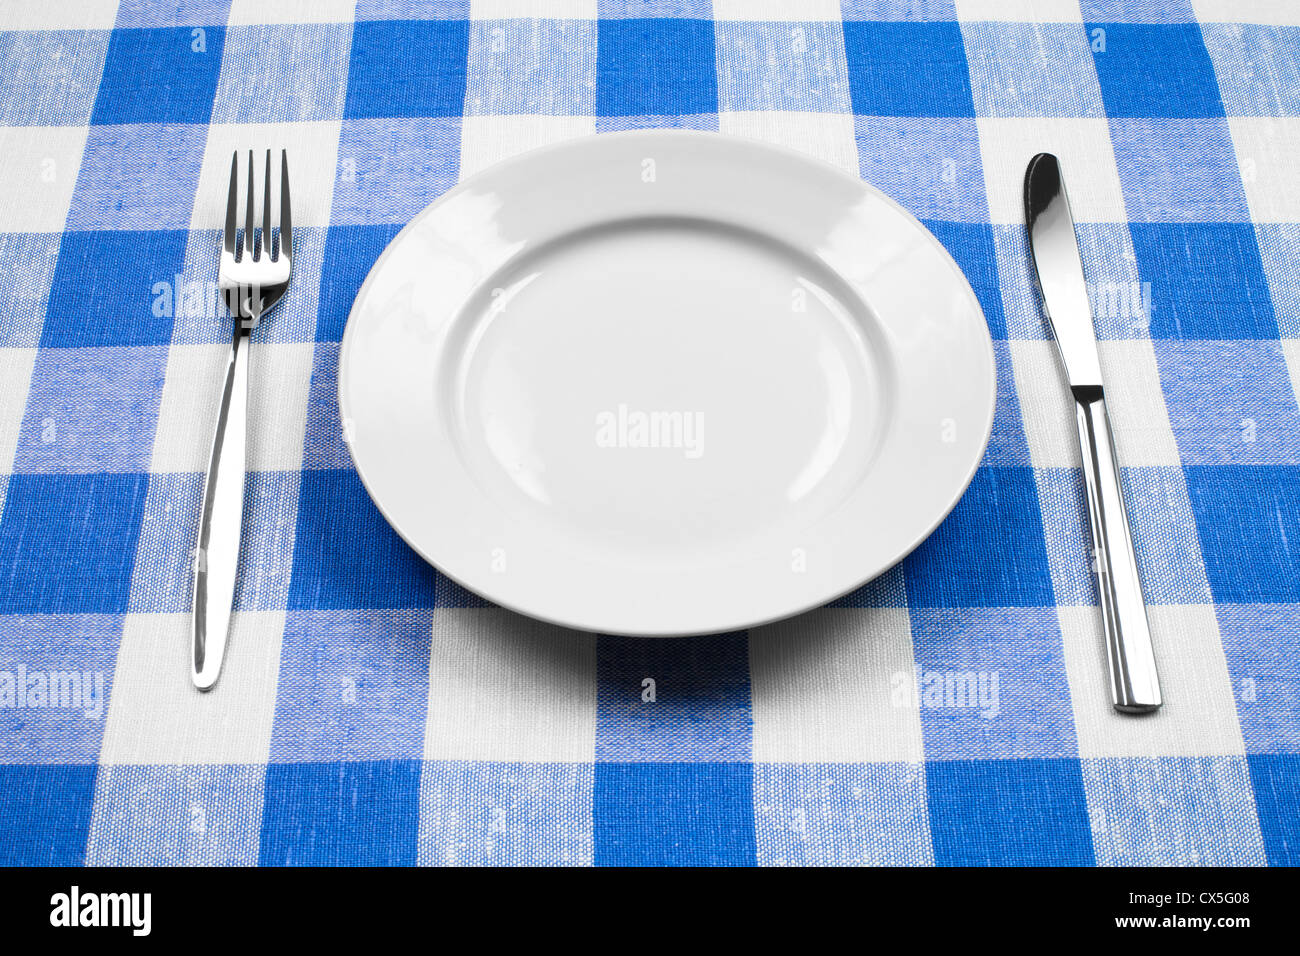 Knife, White Plate And Fork On Blue Checked Tablecloth   Stock Image